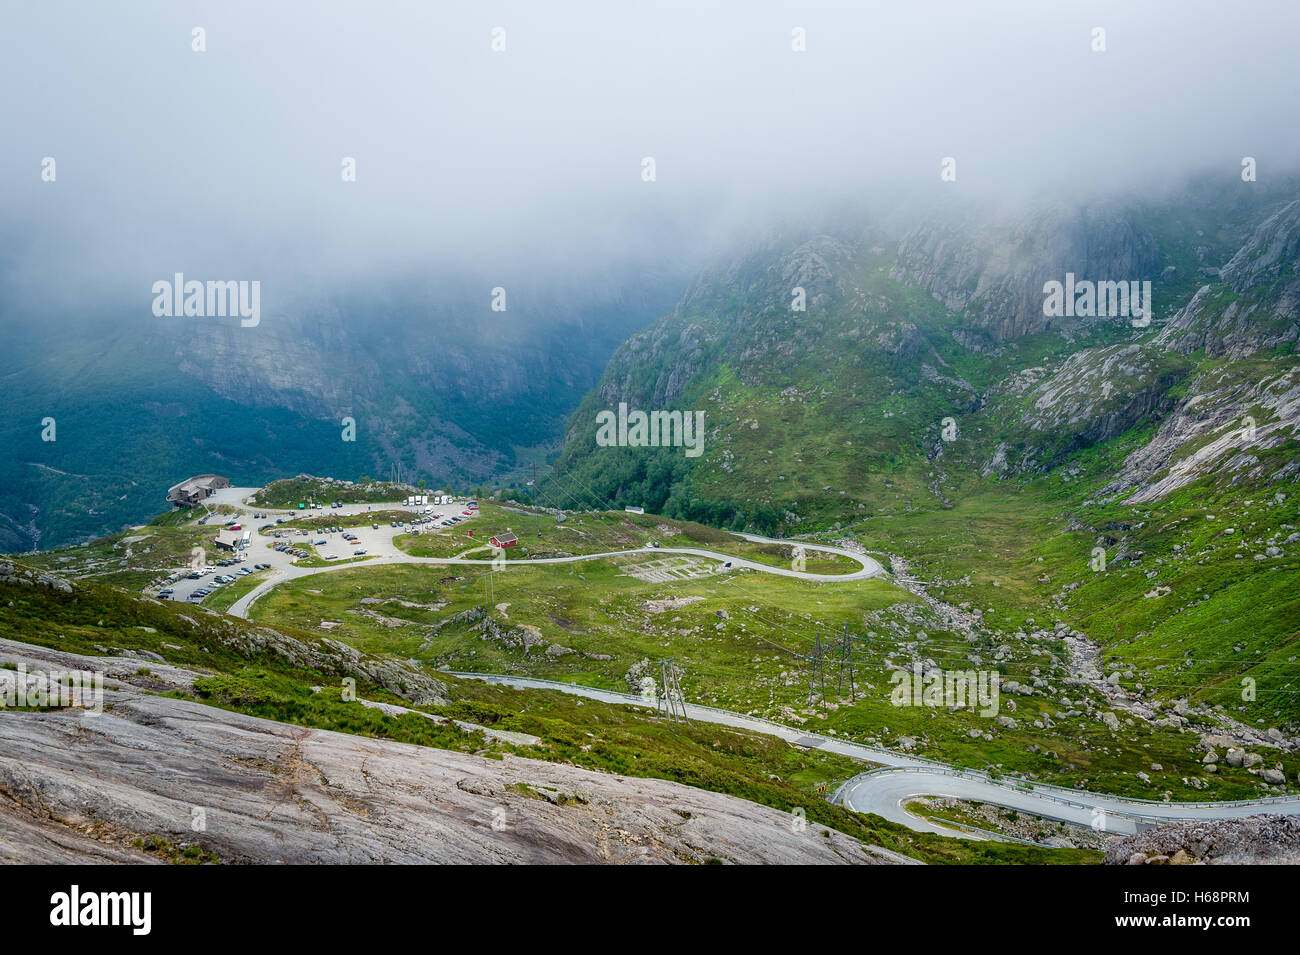 Mountain roads landscape at the start of Kjerag hiking route. - Stock Image